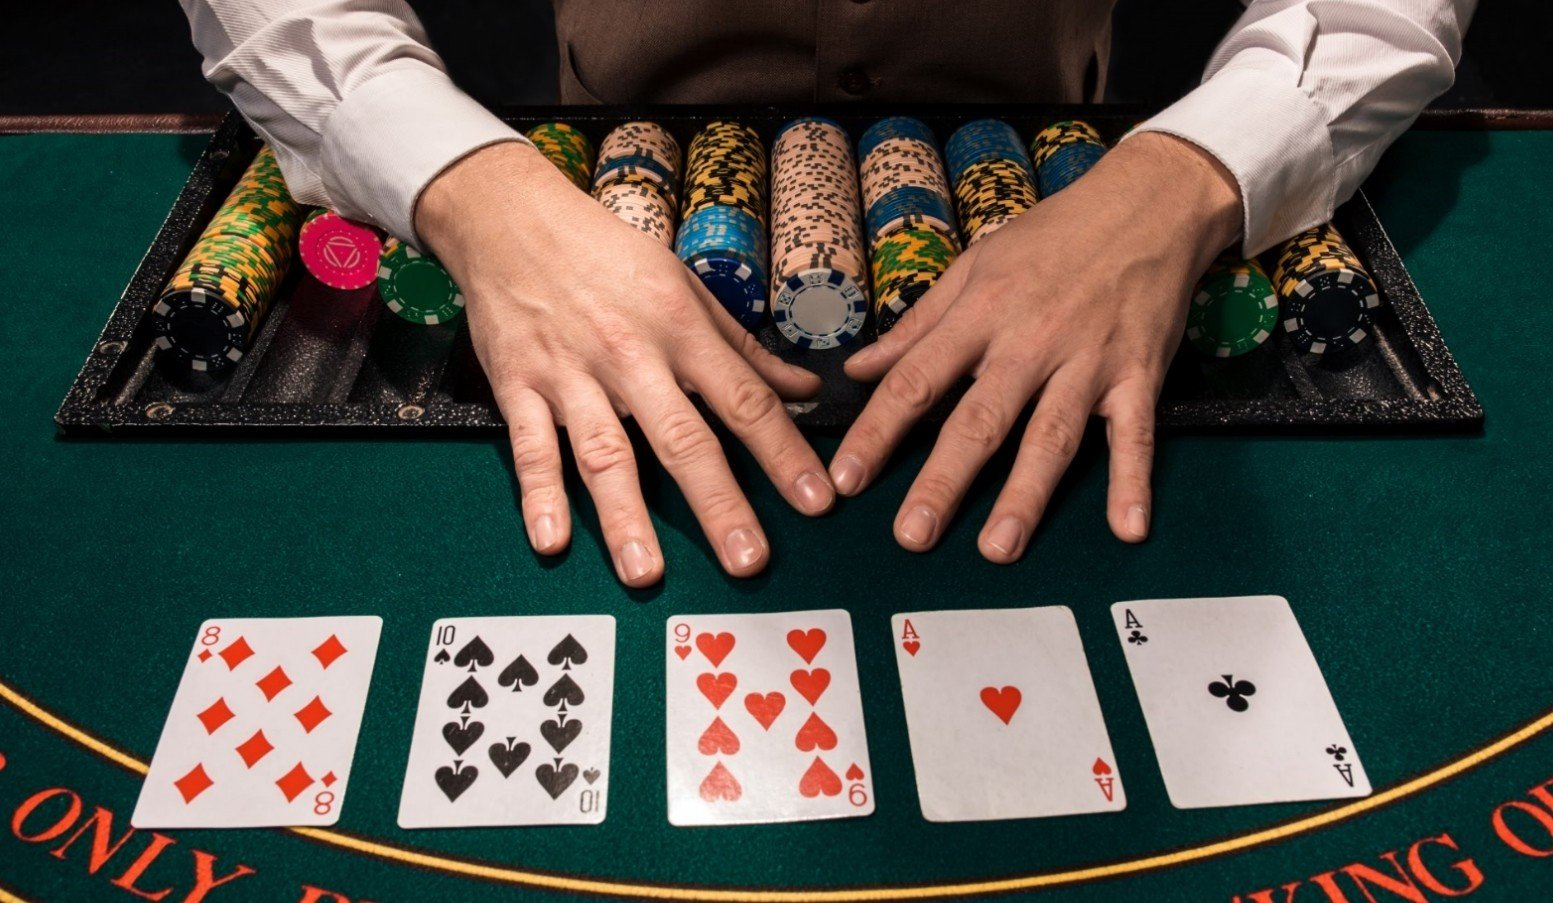 Is this Casino Factor That onerous?